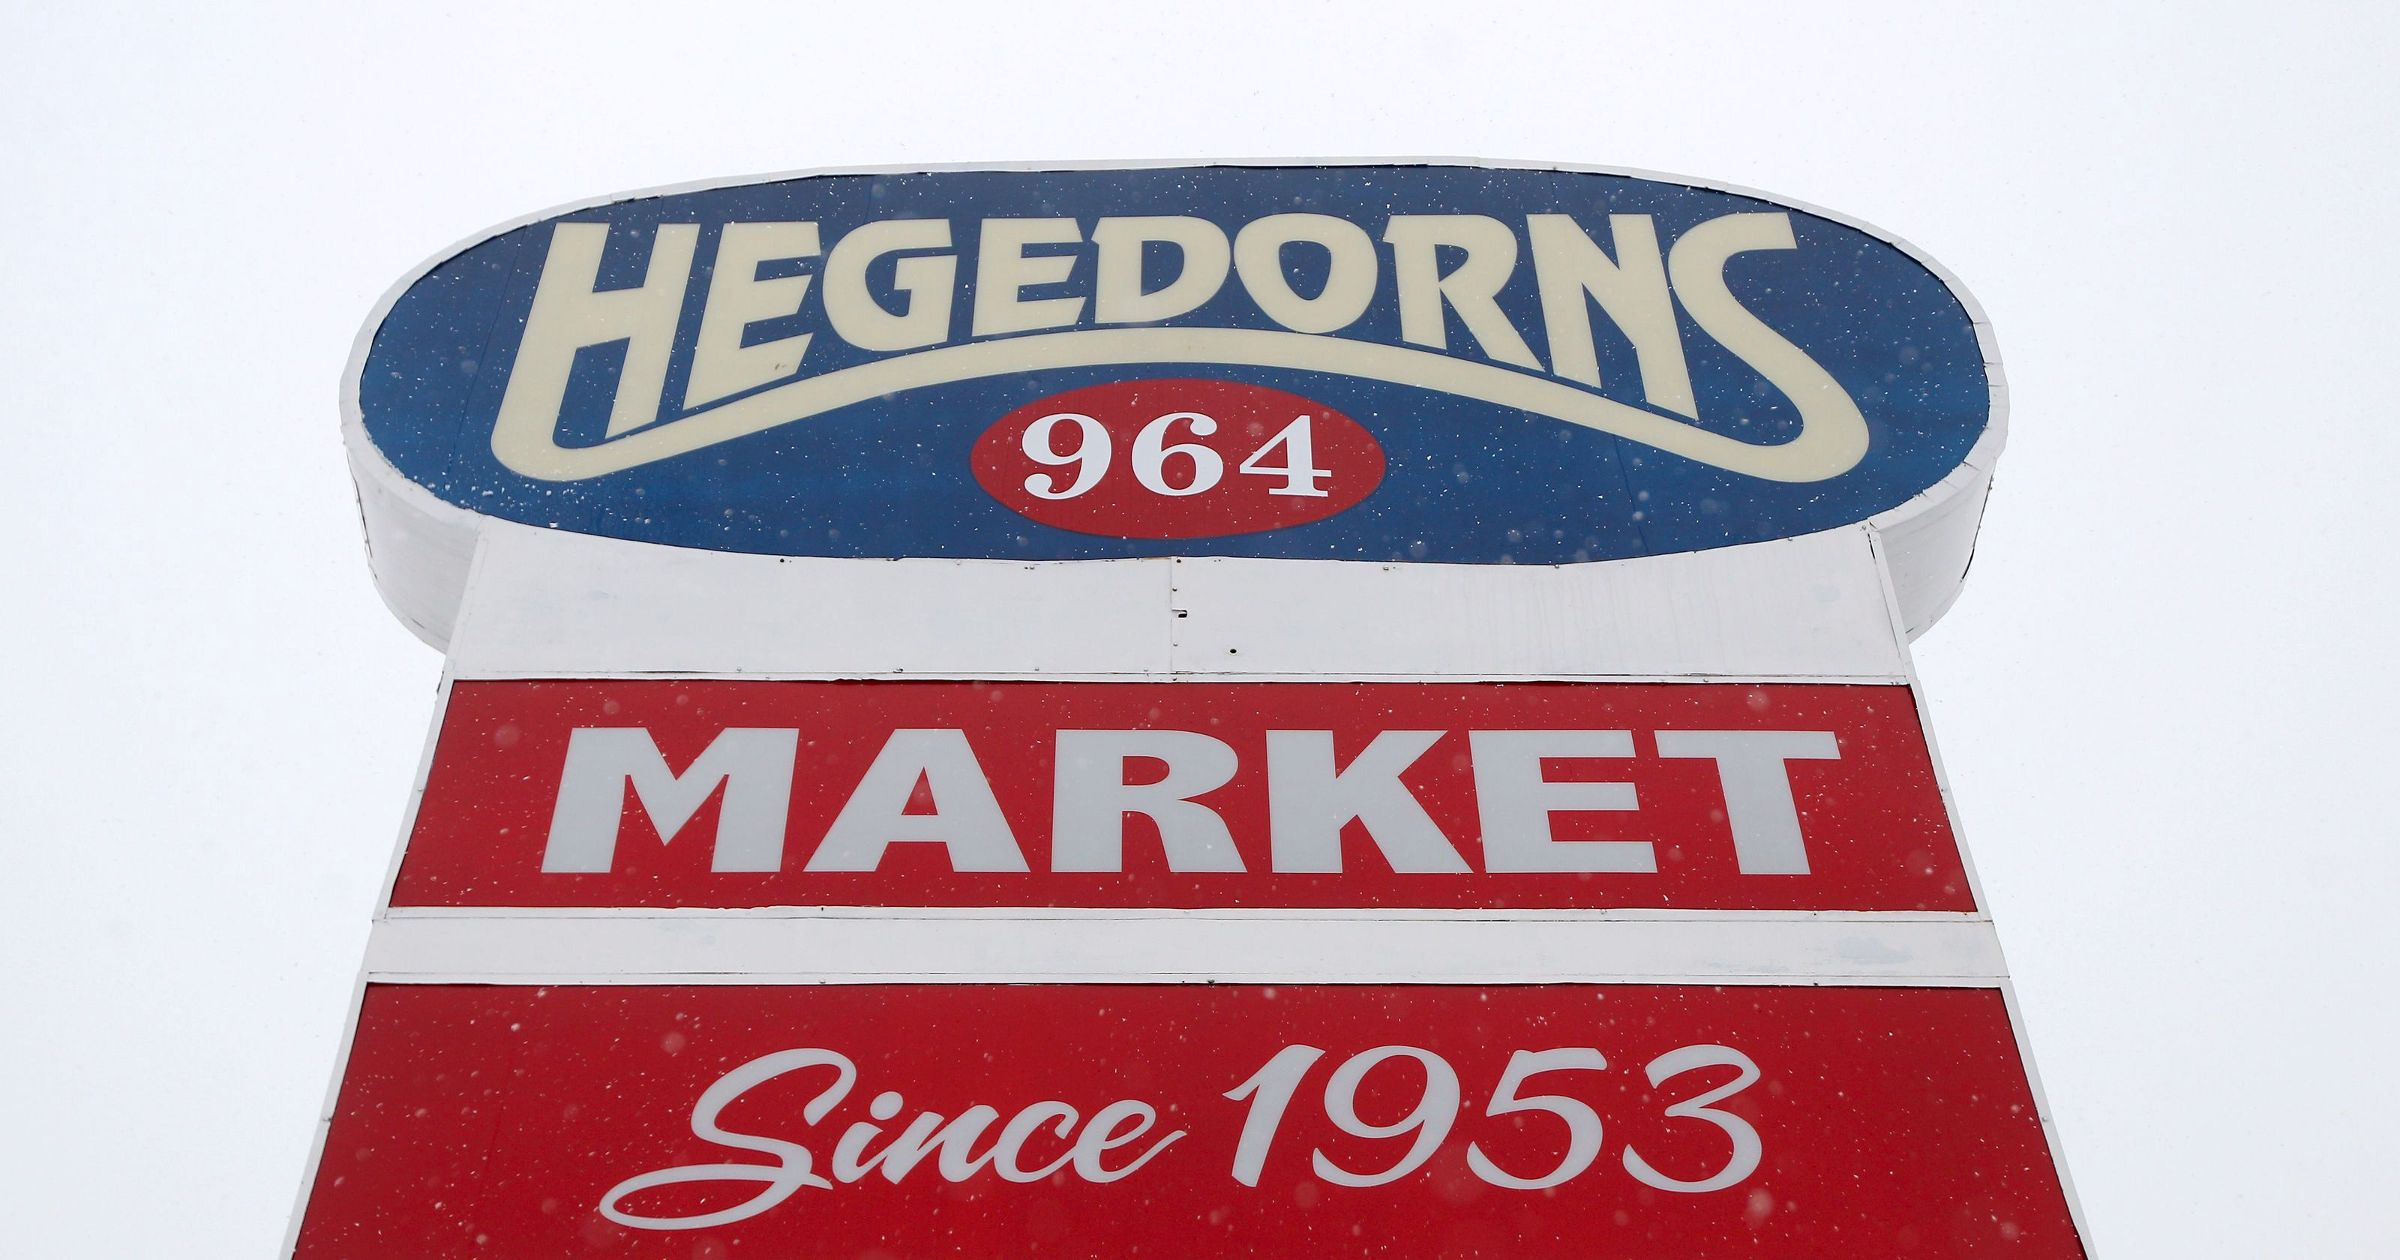 Hegedorn's Sign